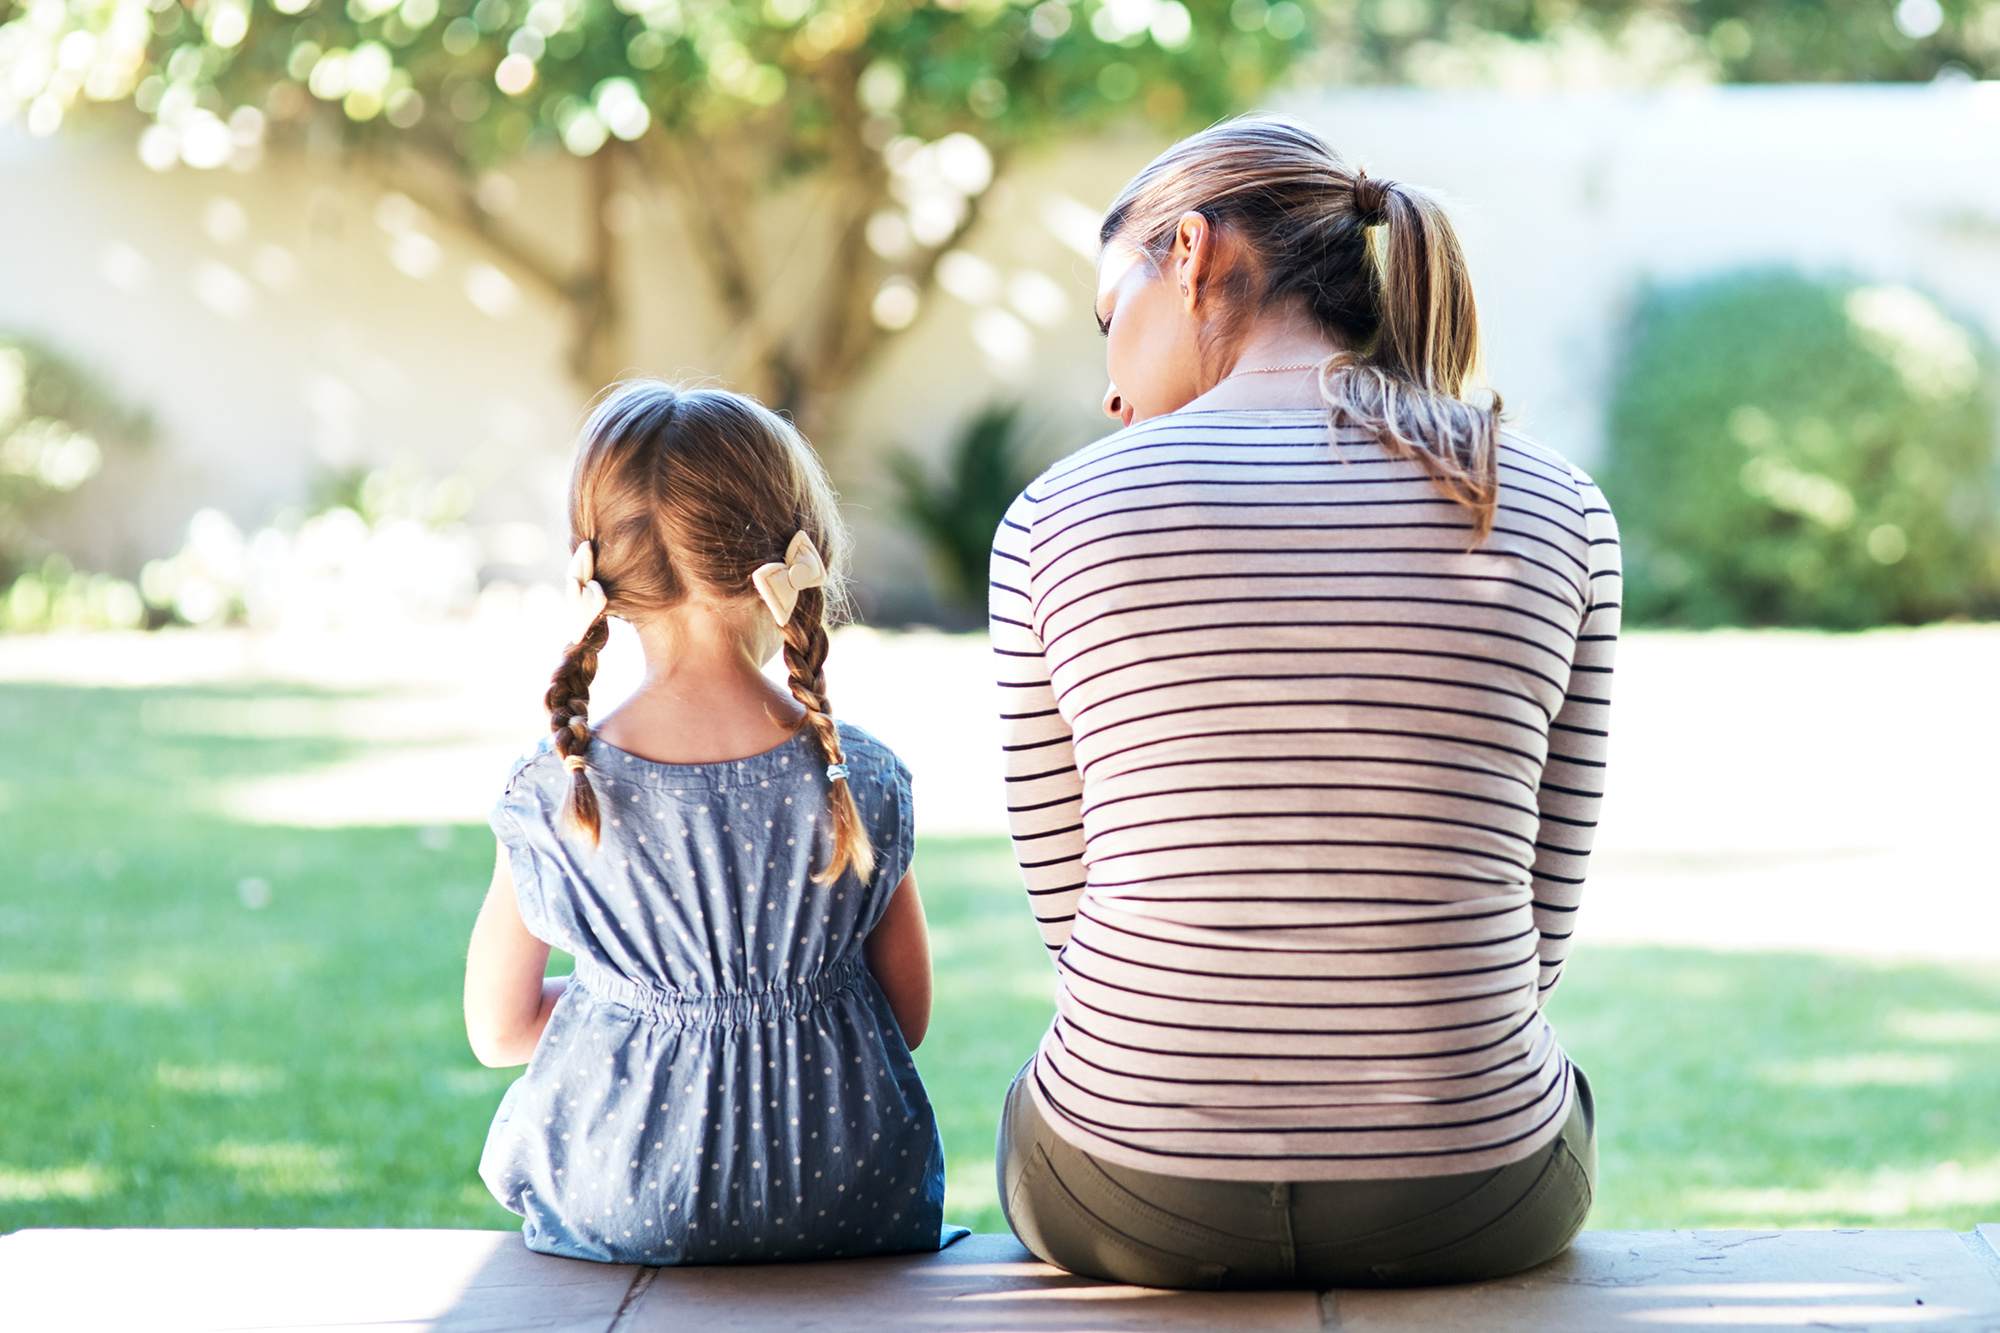 Most parents think their kids avoid talking to them